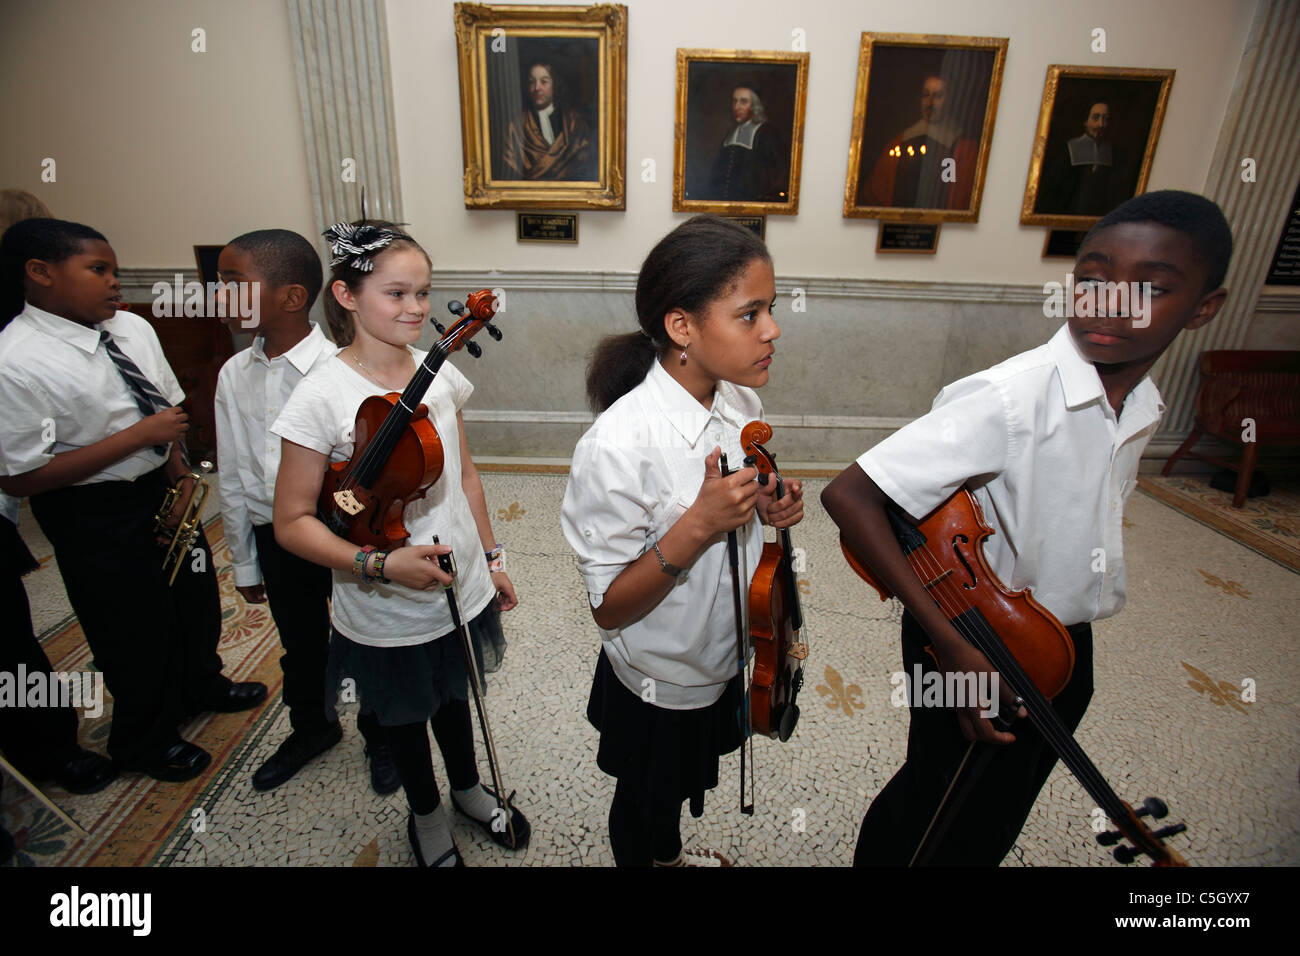 Inner-city Middle school music students ready for a performance of classical music - Stock Image